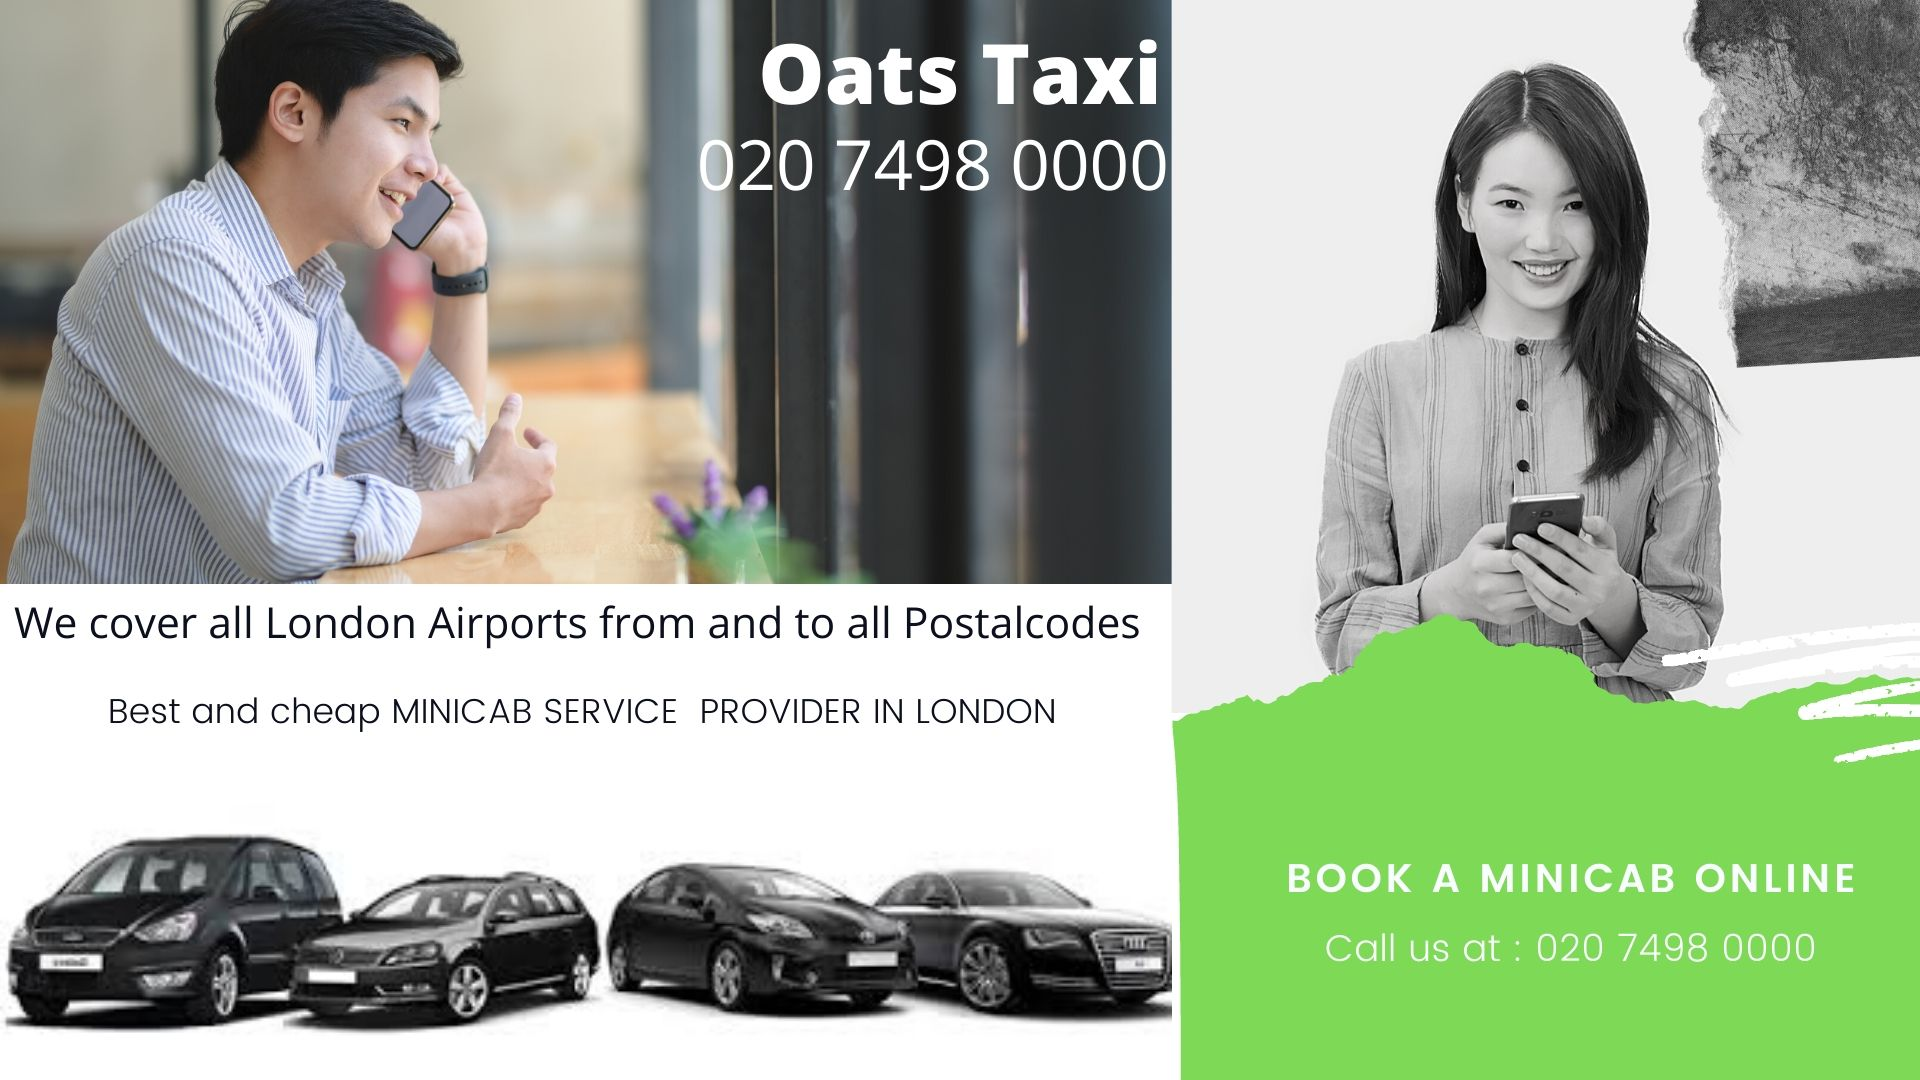 Nearest Taxi Office in Wandsworth | Gatwick Airport | Call now : 02074980000